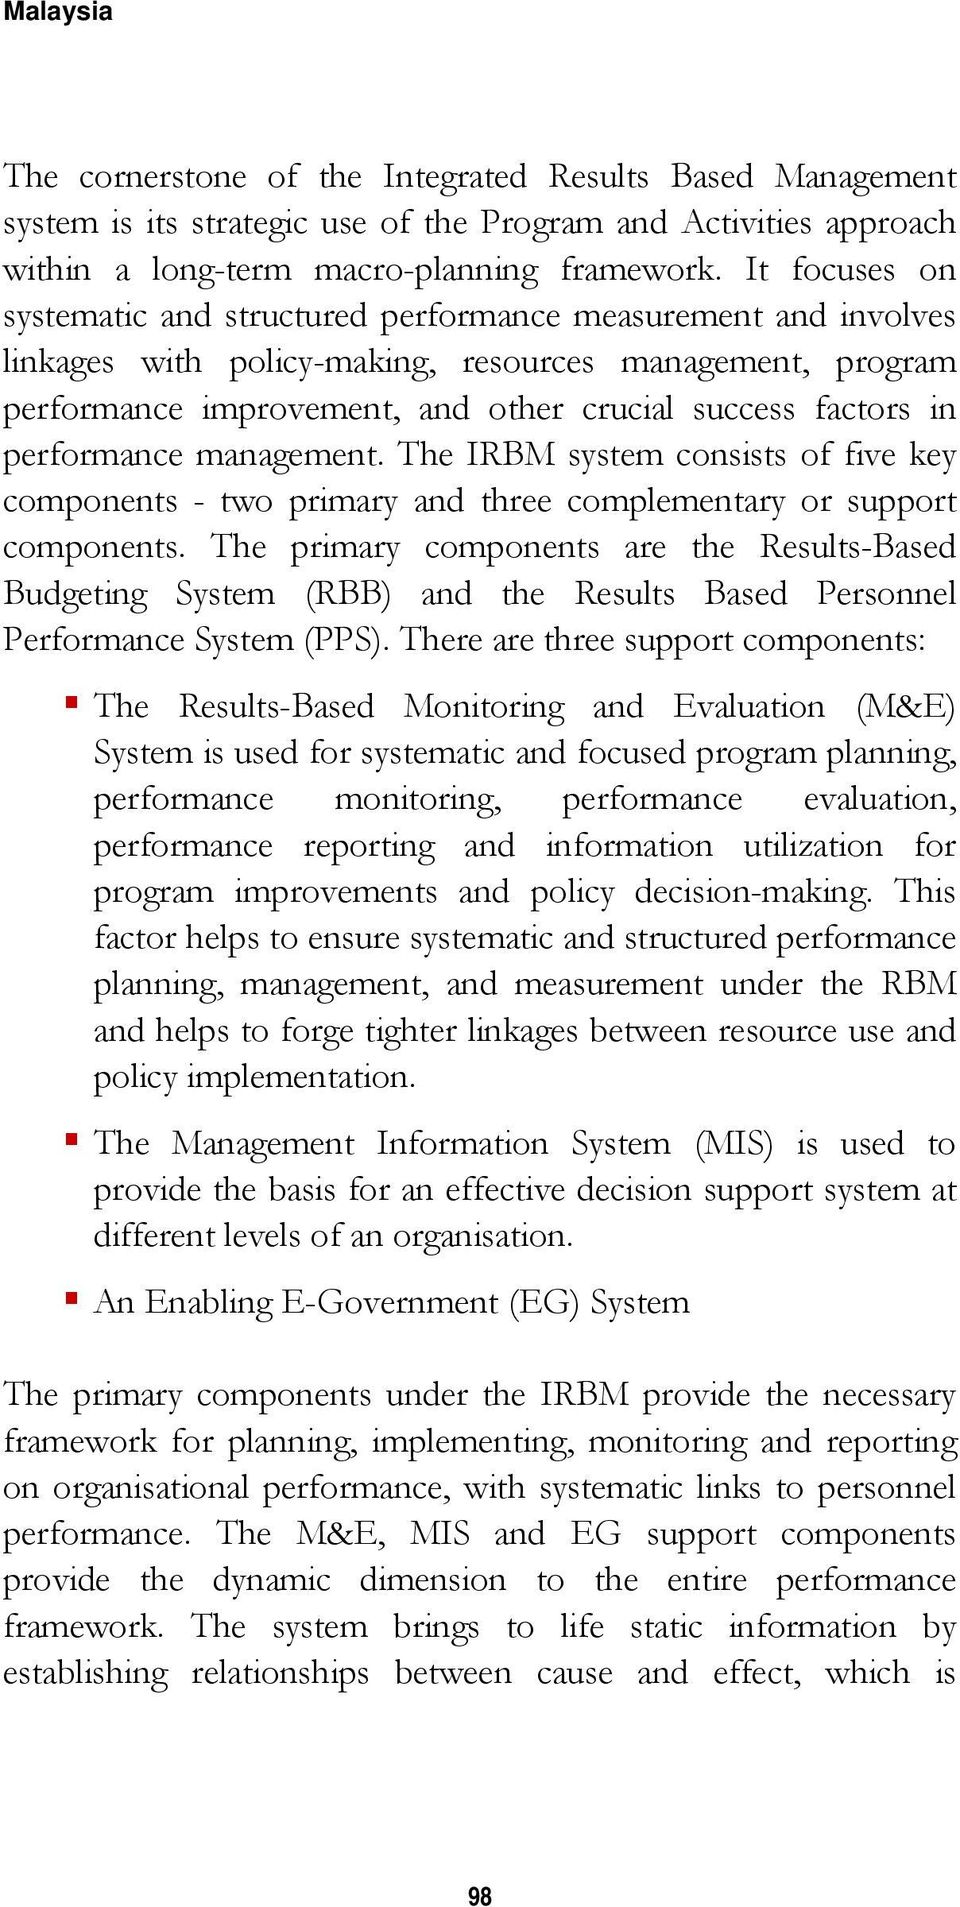 performance management. The IRBM system consists of five key components - two primary and three complementary or support components.